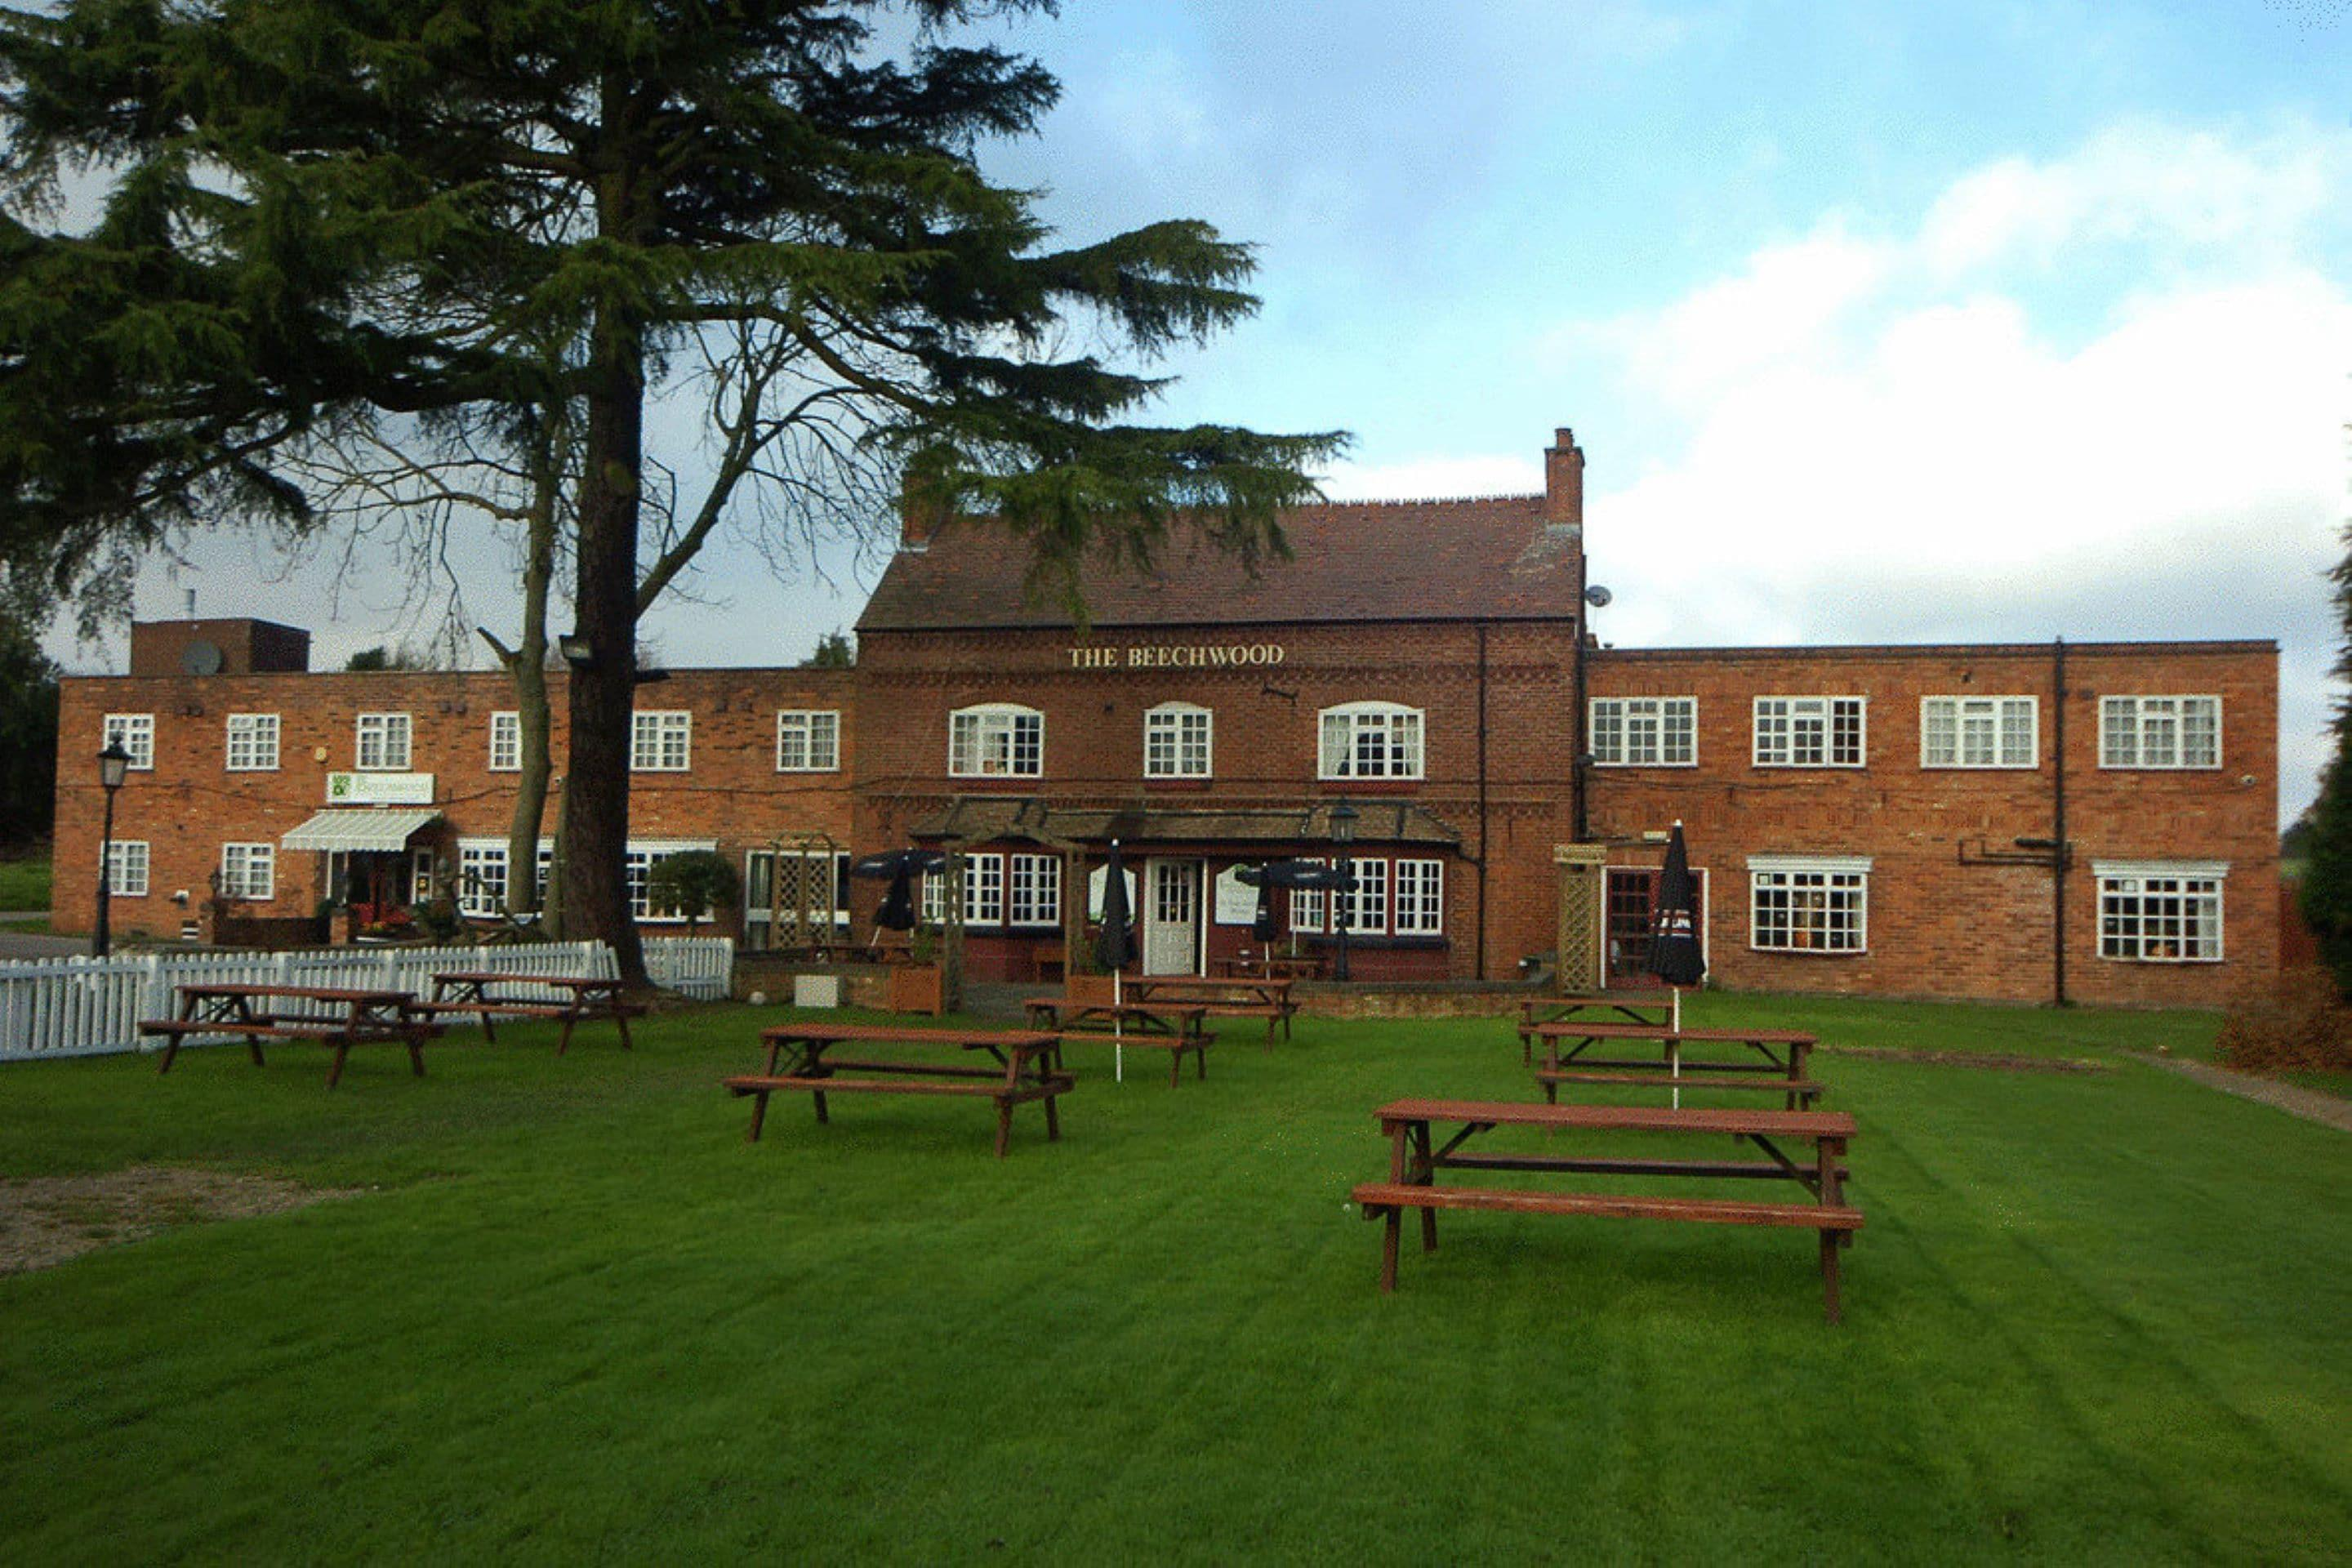 The Beechwood Hotel